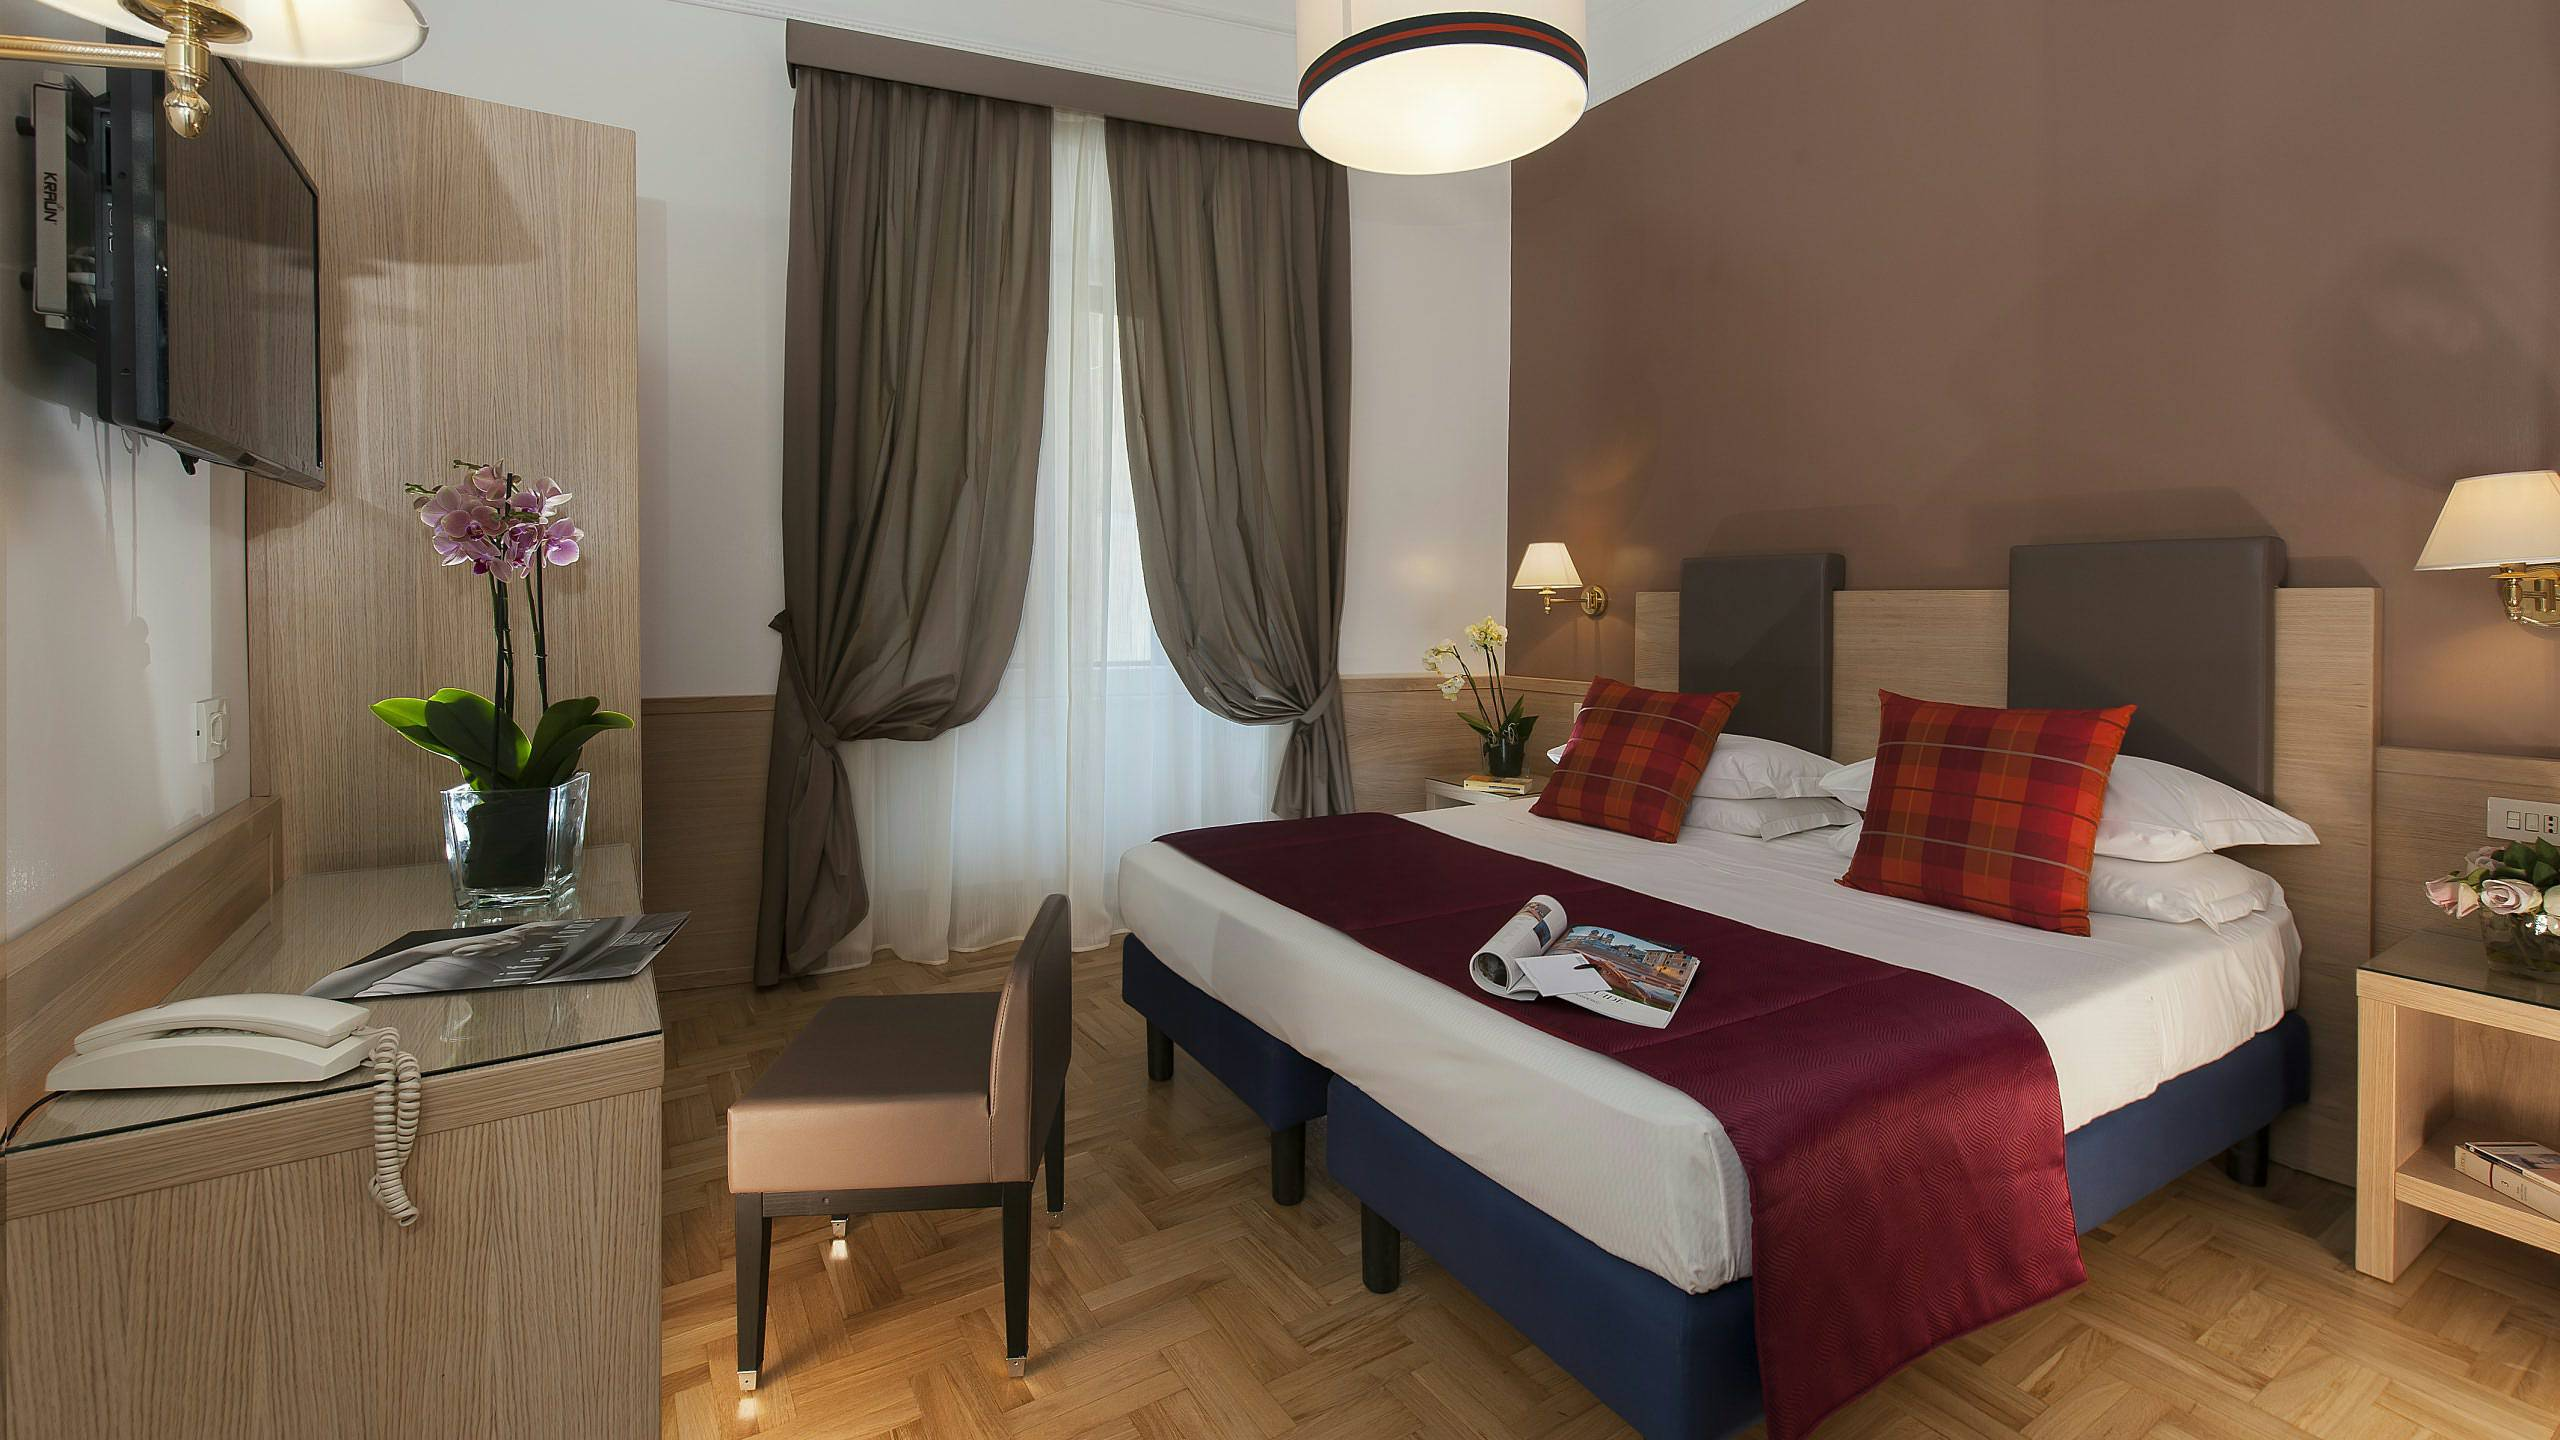 Hotel-Nord-Nuova-Roma-zimmer-28